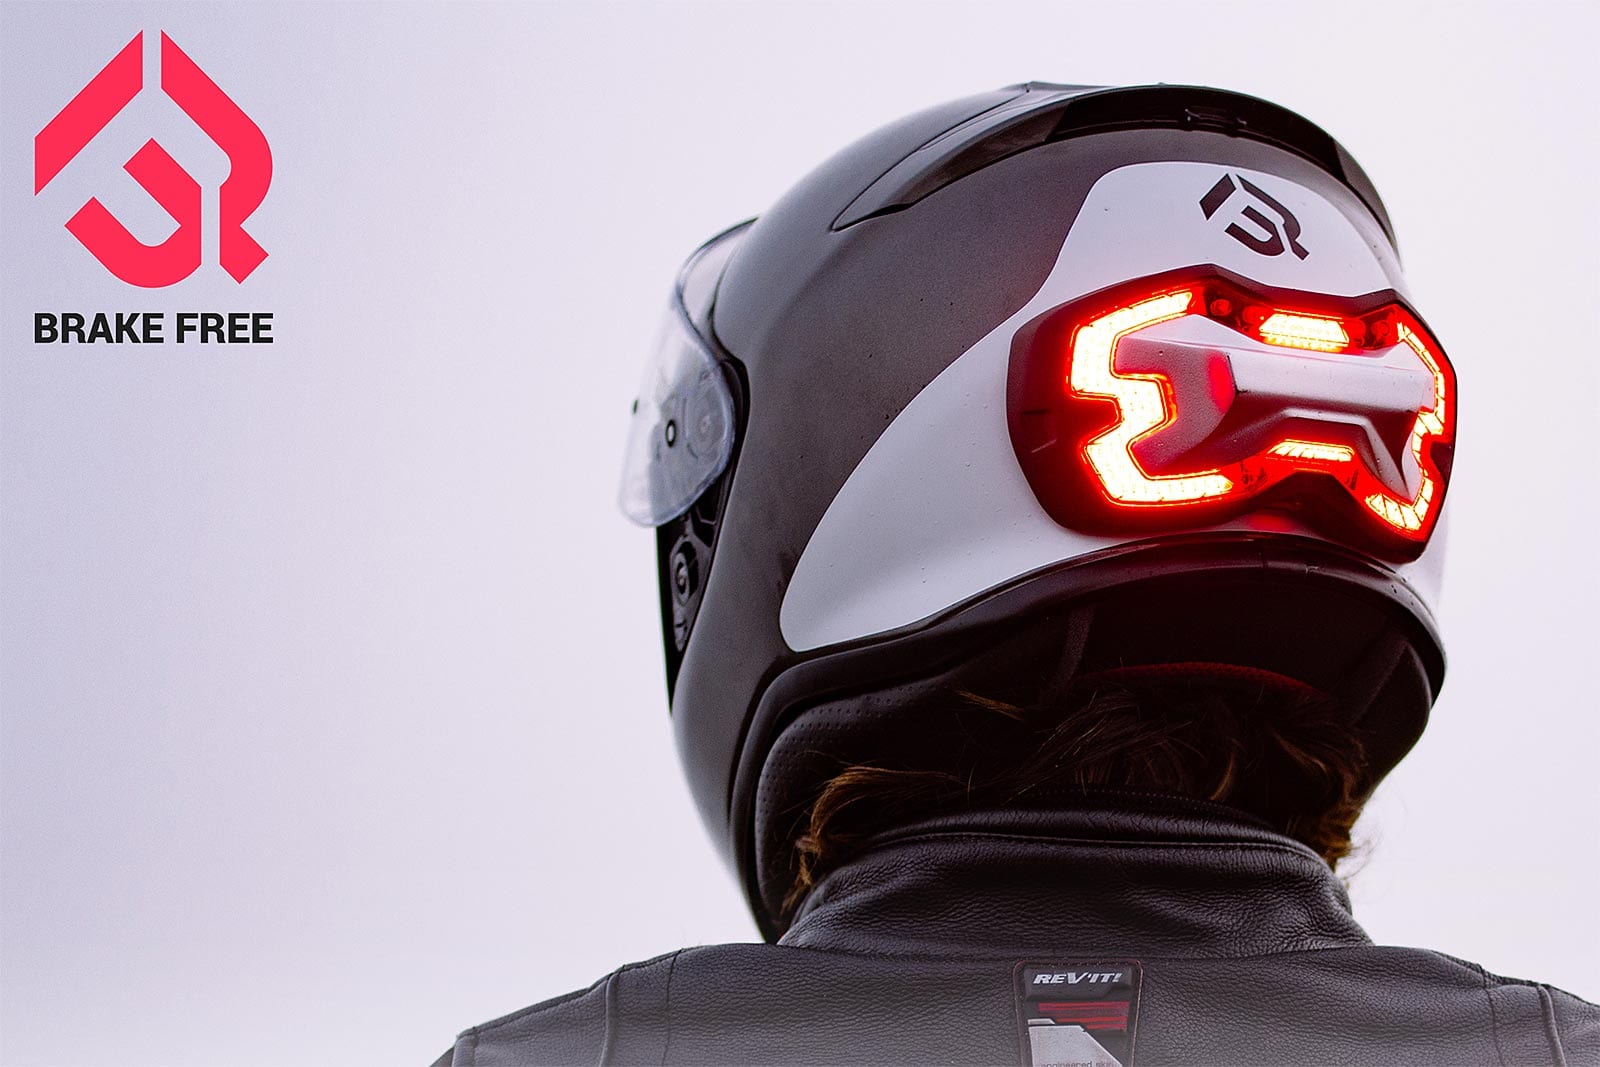 Brake Free Surpasses Crowdfunding Goal for Autonomous Motorcycle Brake Light Helmet